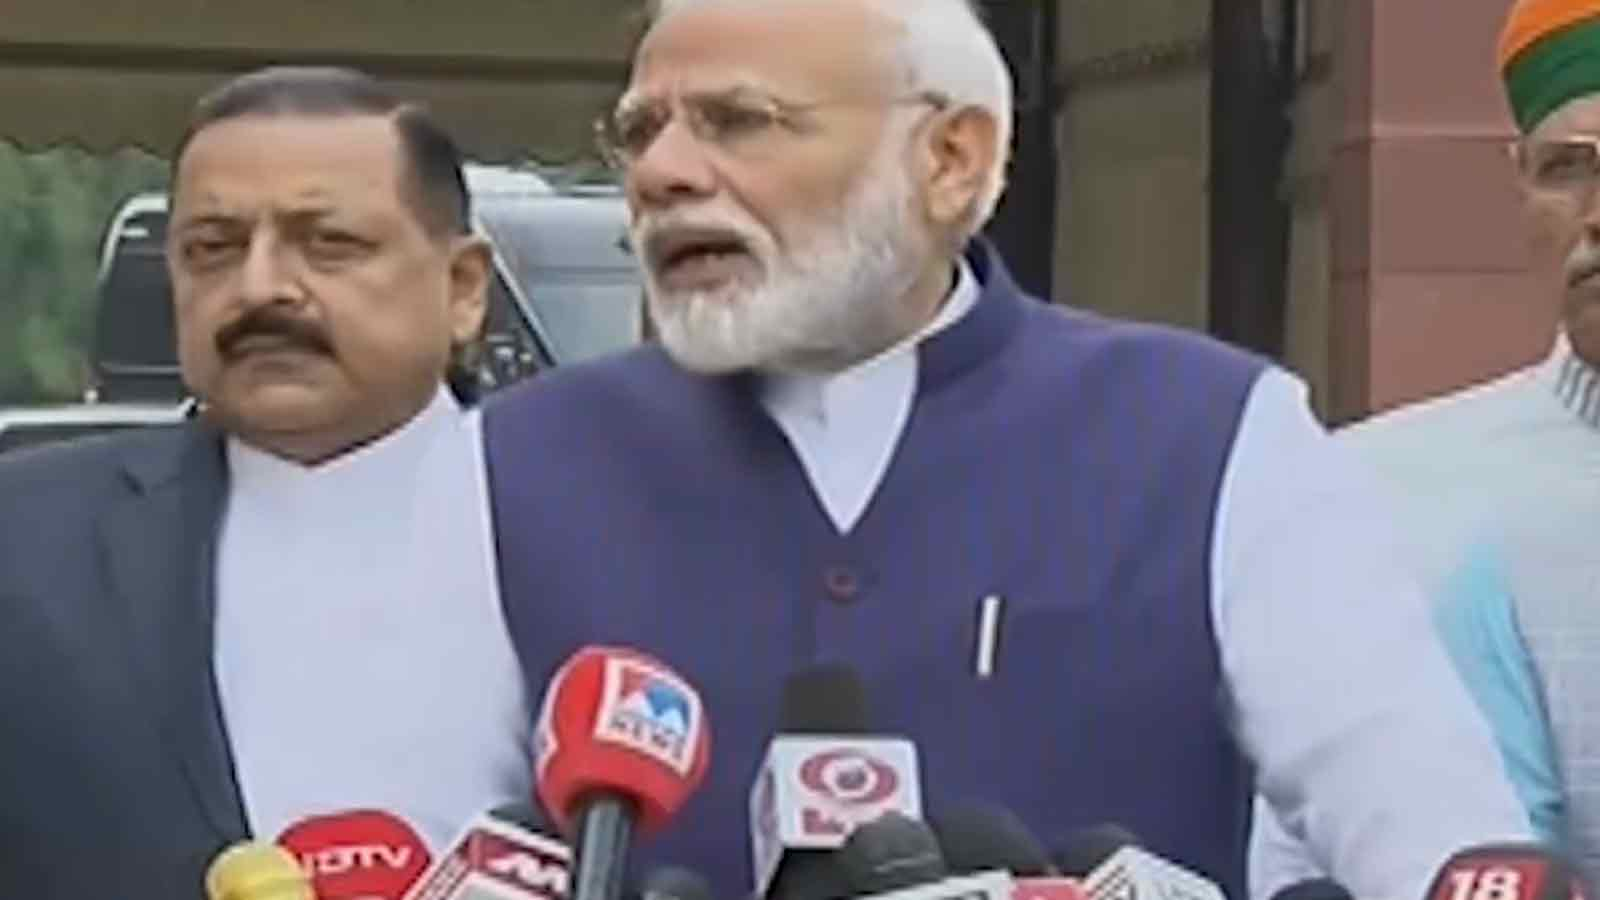 government-wants-frank-discussions-on-all-matters-pm-narendra-modi-says-before-the-winter-session